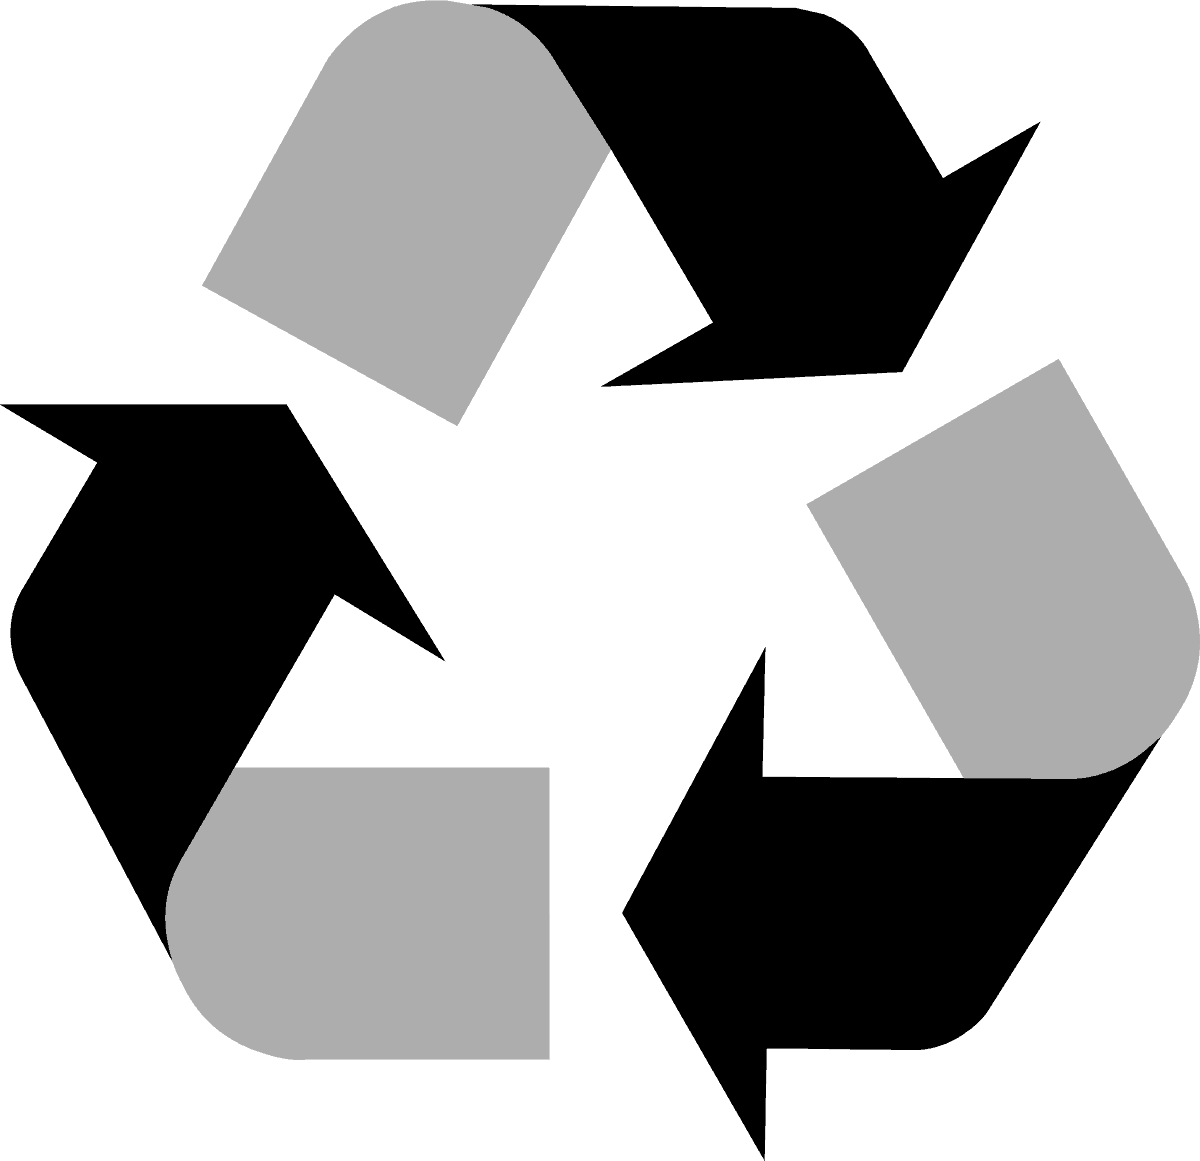 recycling symbol download the